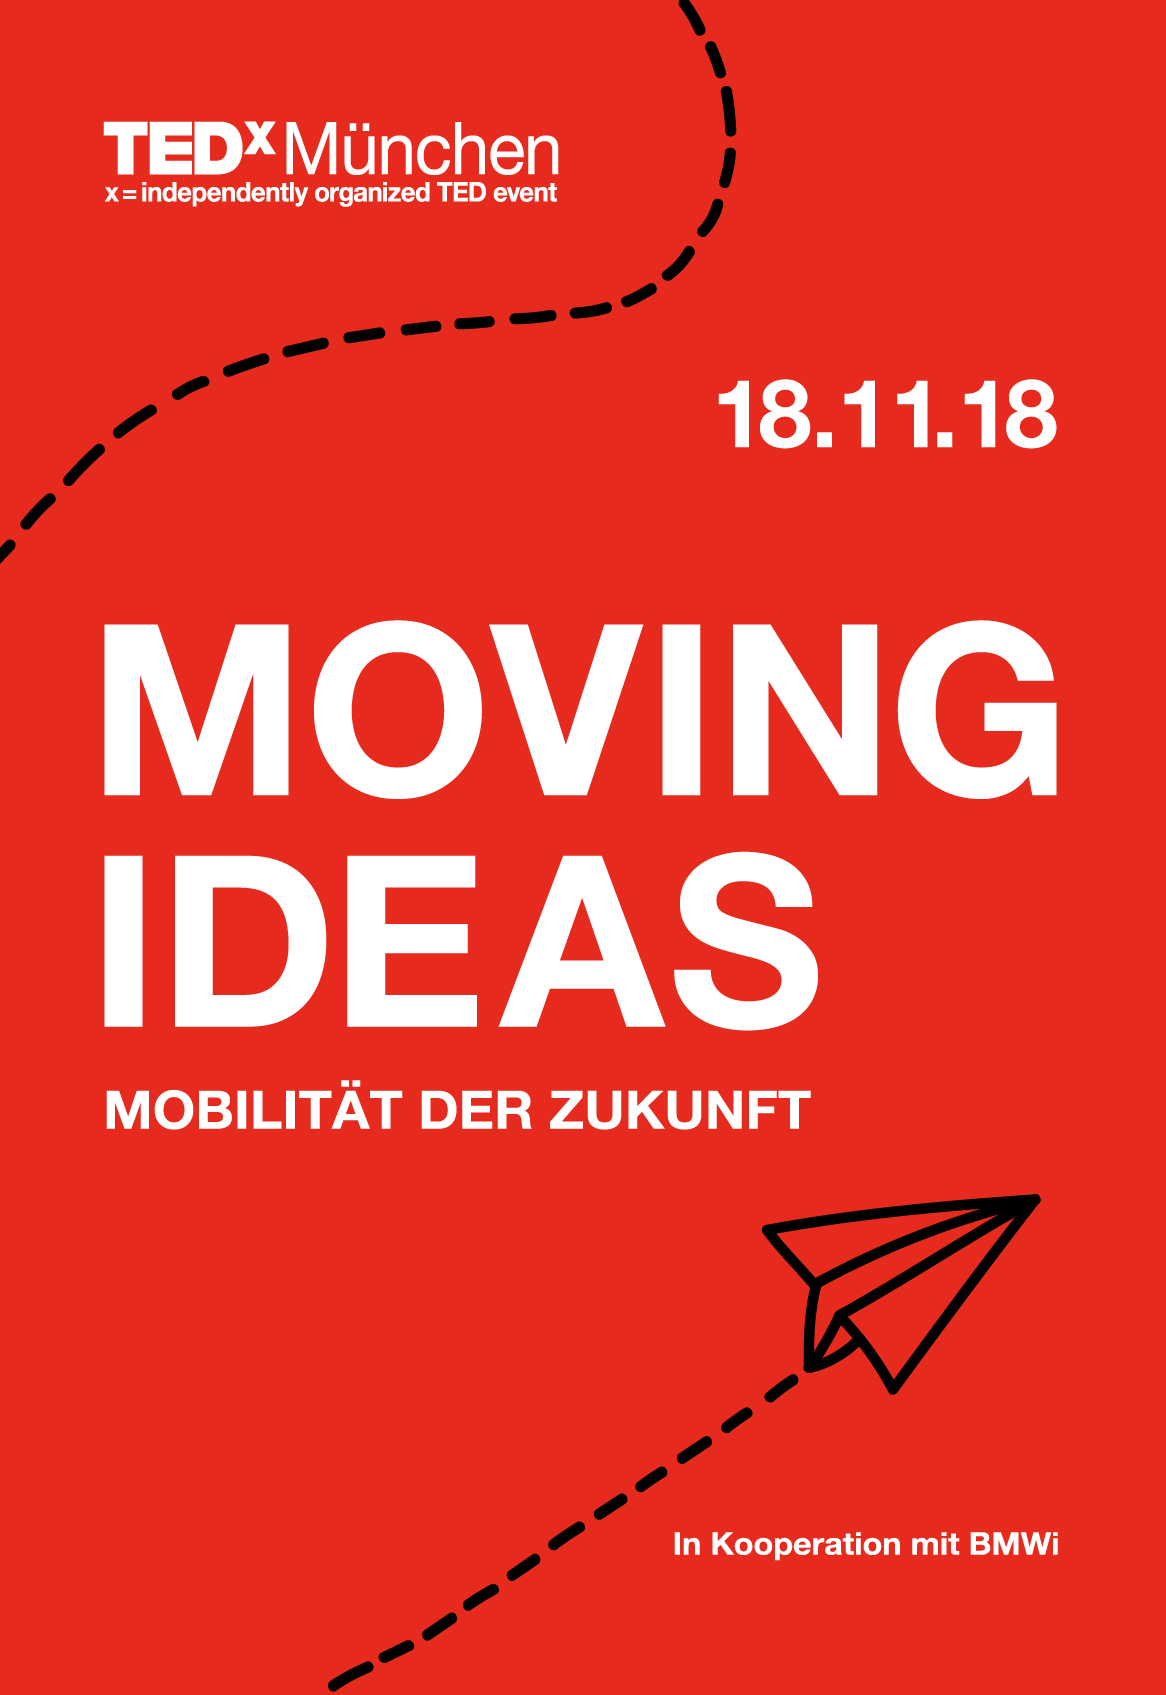 Poster for an event within TEDx Munich 2018